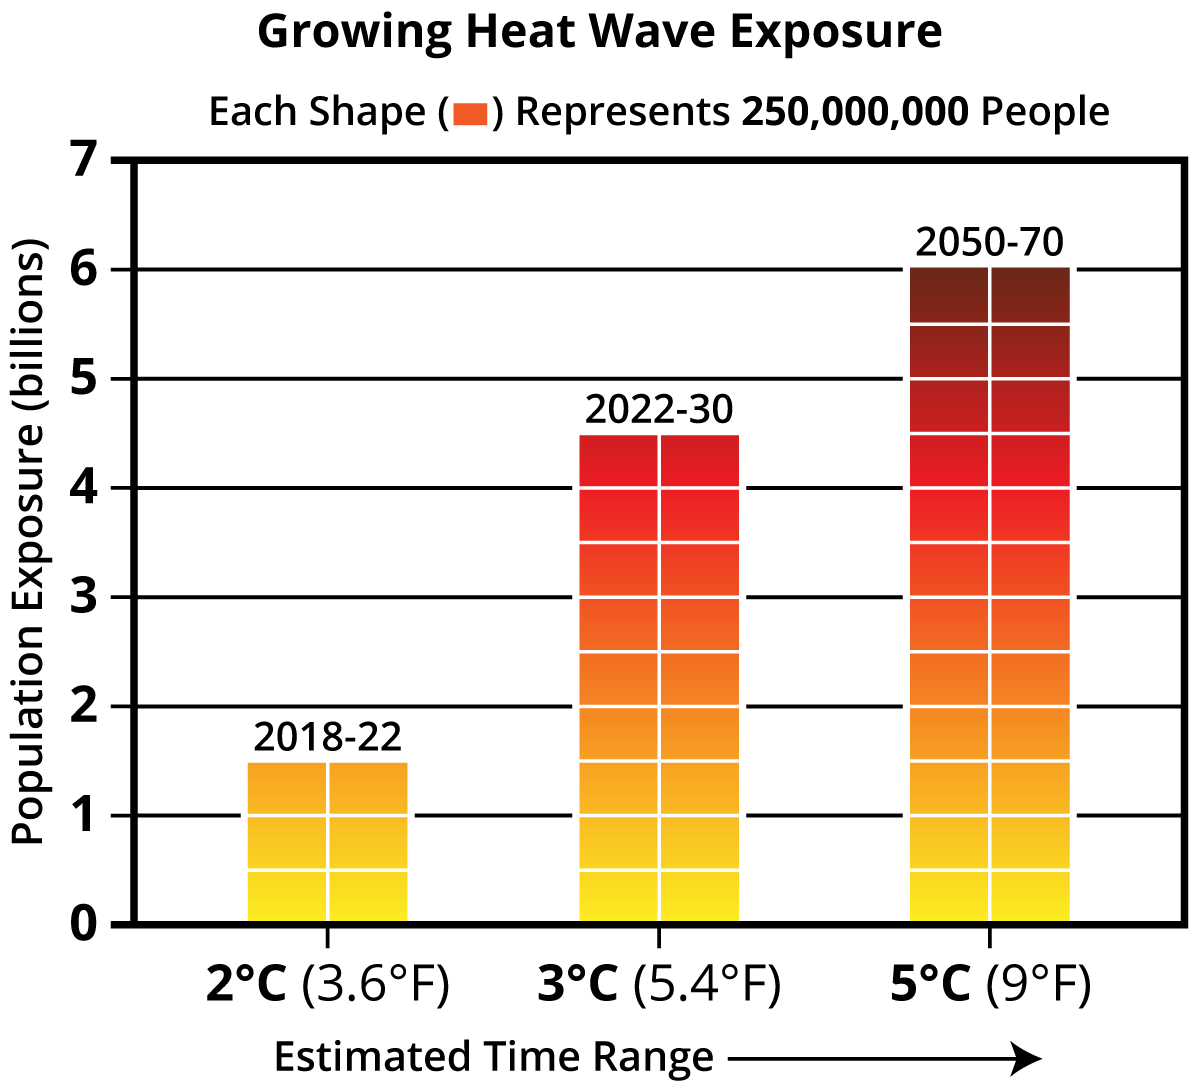 Growing_Heat_Wave_Exposure.png